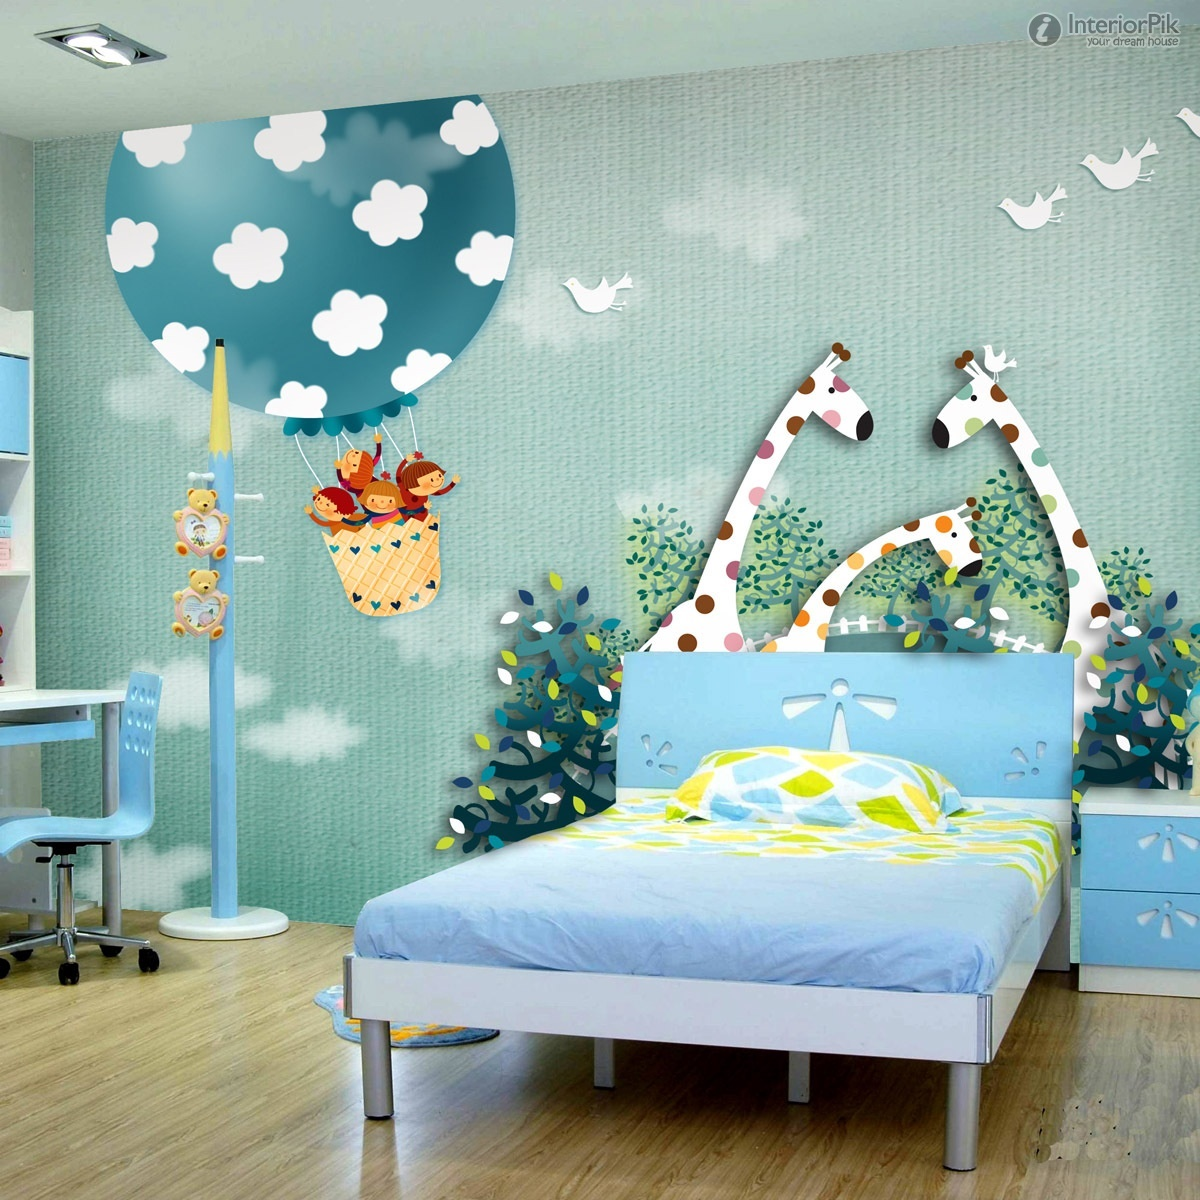 Childrens bedroom wallpaper ideas home decor uk for Mural art designs for bedroom